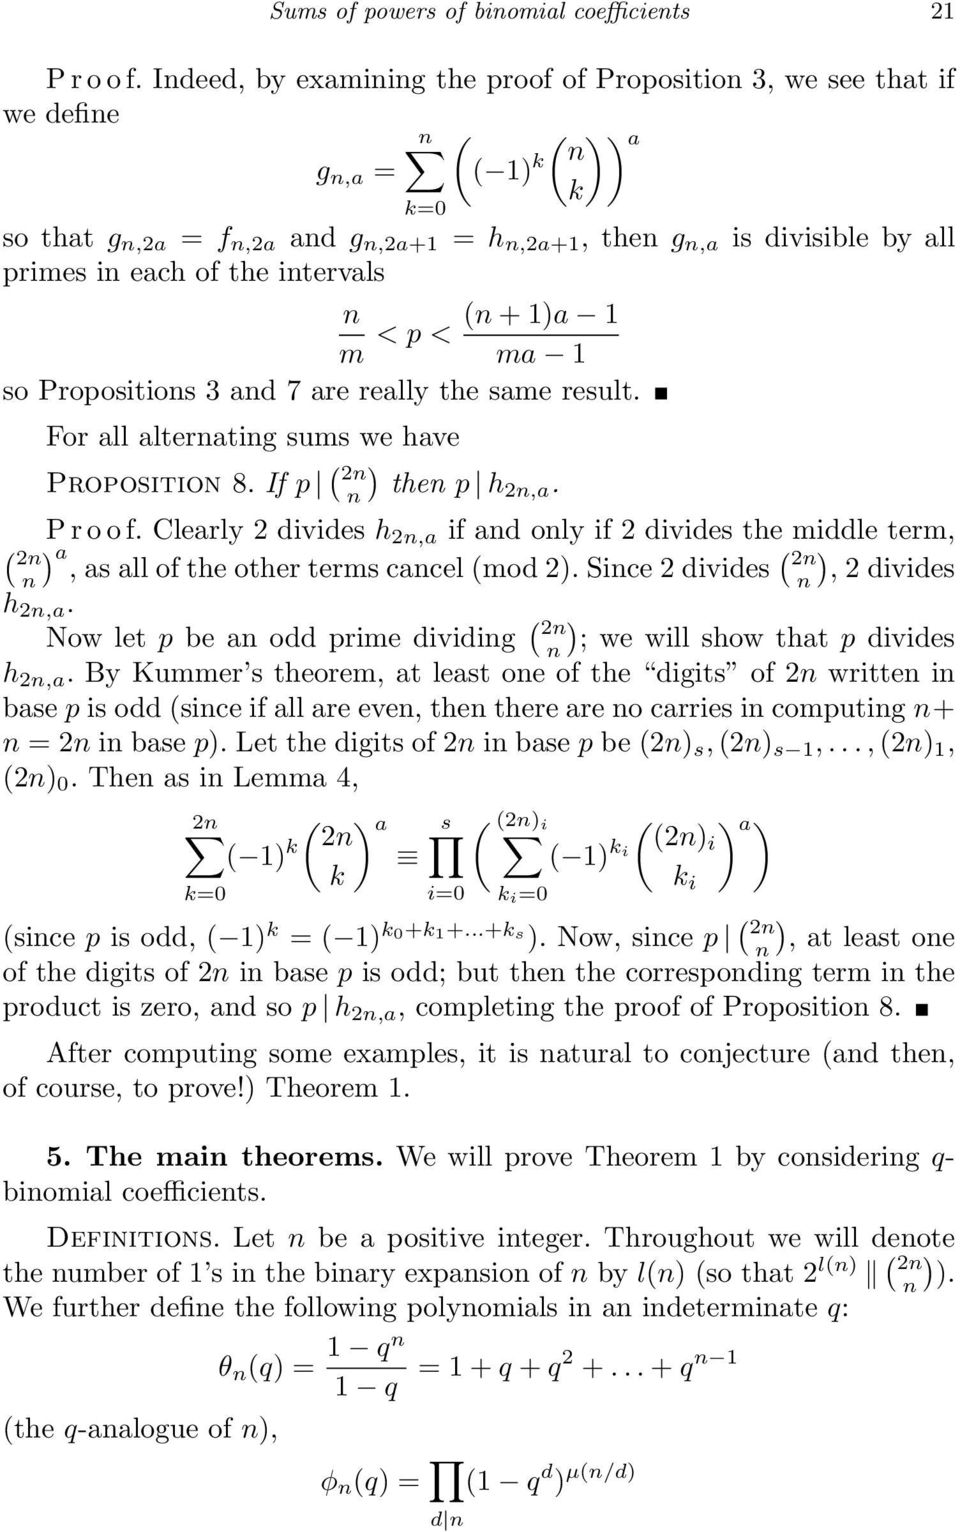 p < m ma 1 so Propositios 3 ad 7 are really the same result. For all alteratig sums we have Propositio 8. If p ( ) the p h,a. P r o o f.